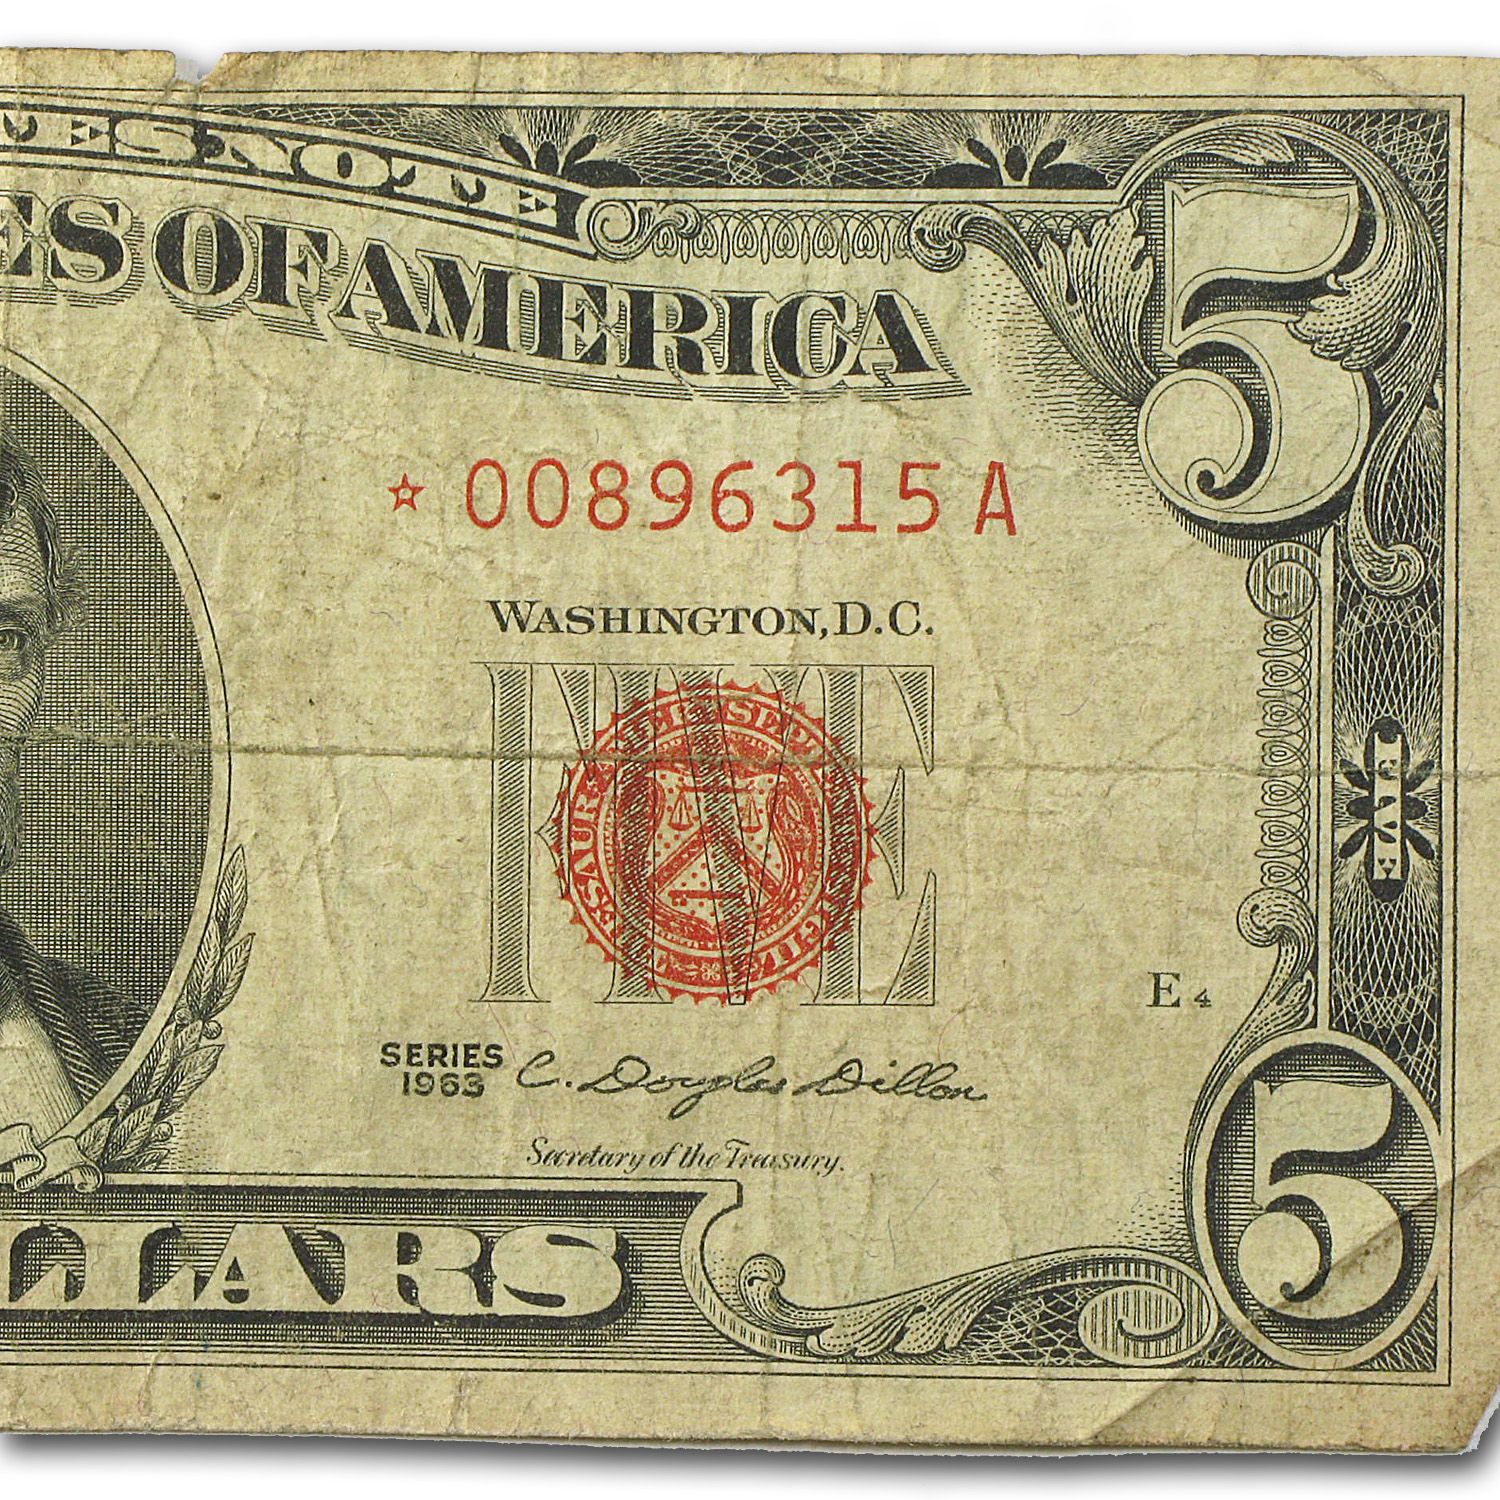 1963* $5.00 U.S. Note Red Seal Good/VG (Star Note)